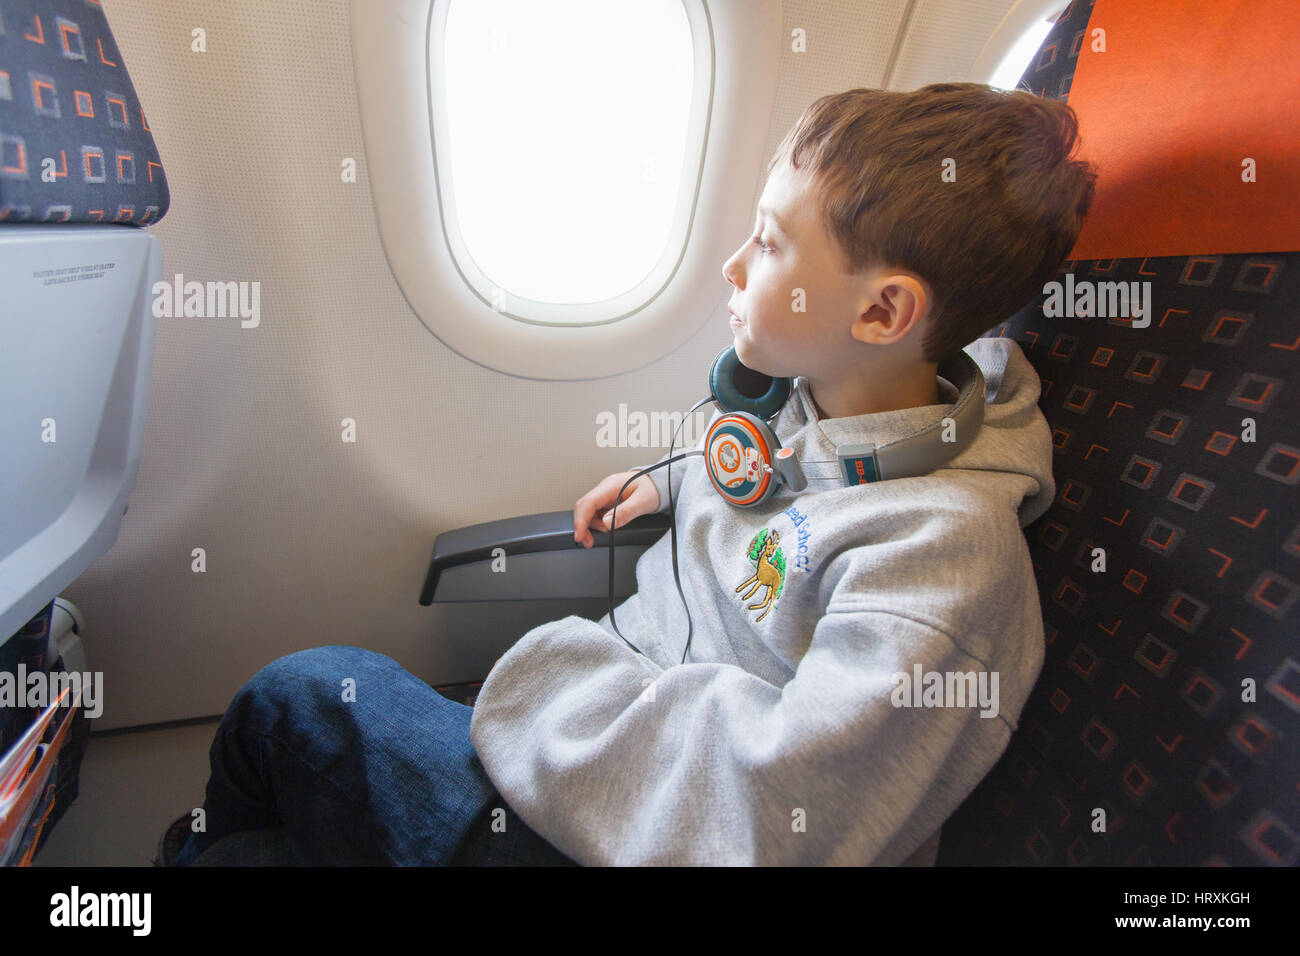 Seven year old boy on-board a easy jet flight, Gatwick airport, England, United Kingdom. - Stock Image